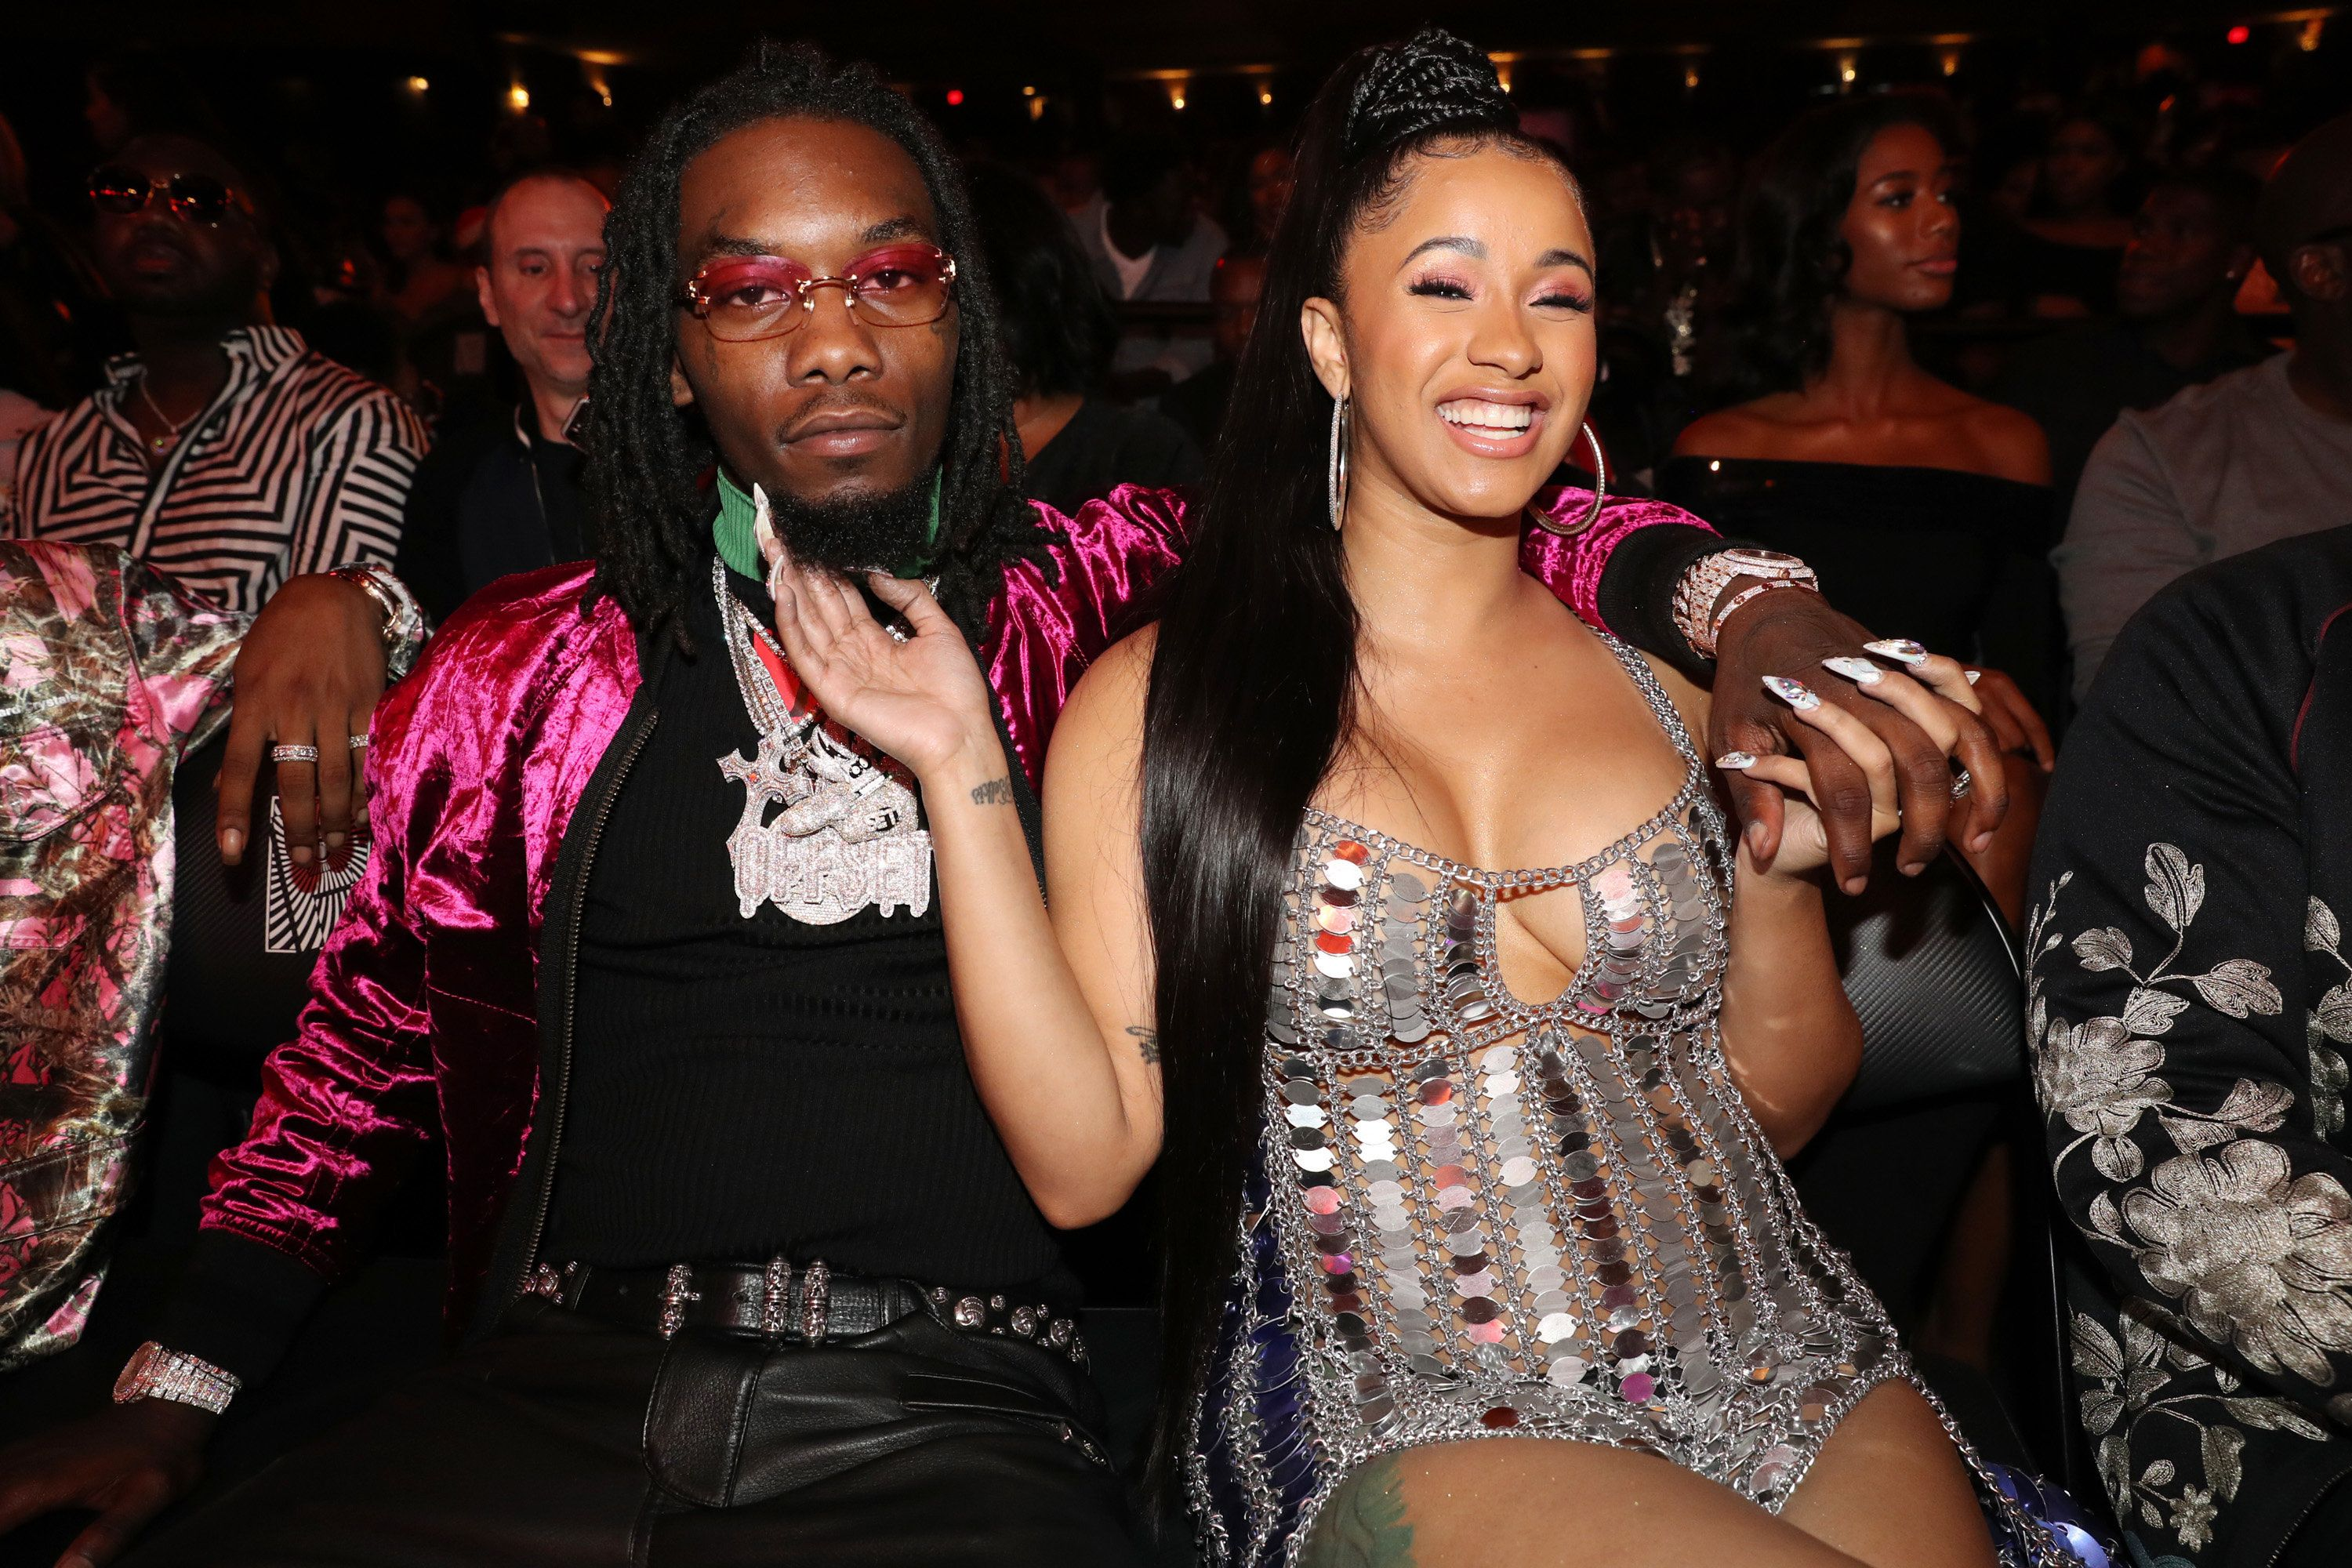 MIAMI BEACH, FL - OCTOBER 06:  (L-R) Offset and Cardi B attend the 2017 BET Hip Hop Awards on October 6, 2017 in Miami Beach, Florida.  (Photo by Johnny Nunez/WireImage)